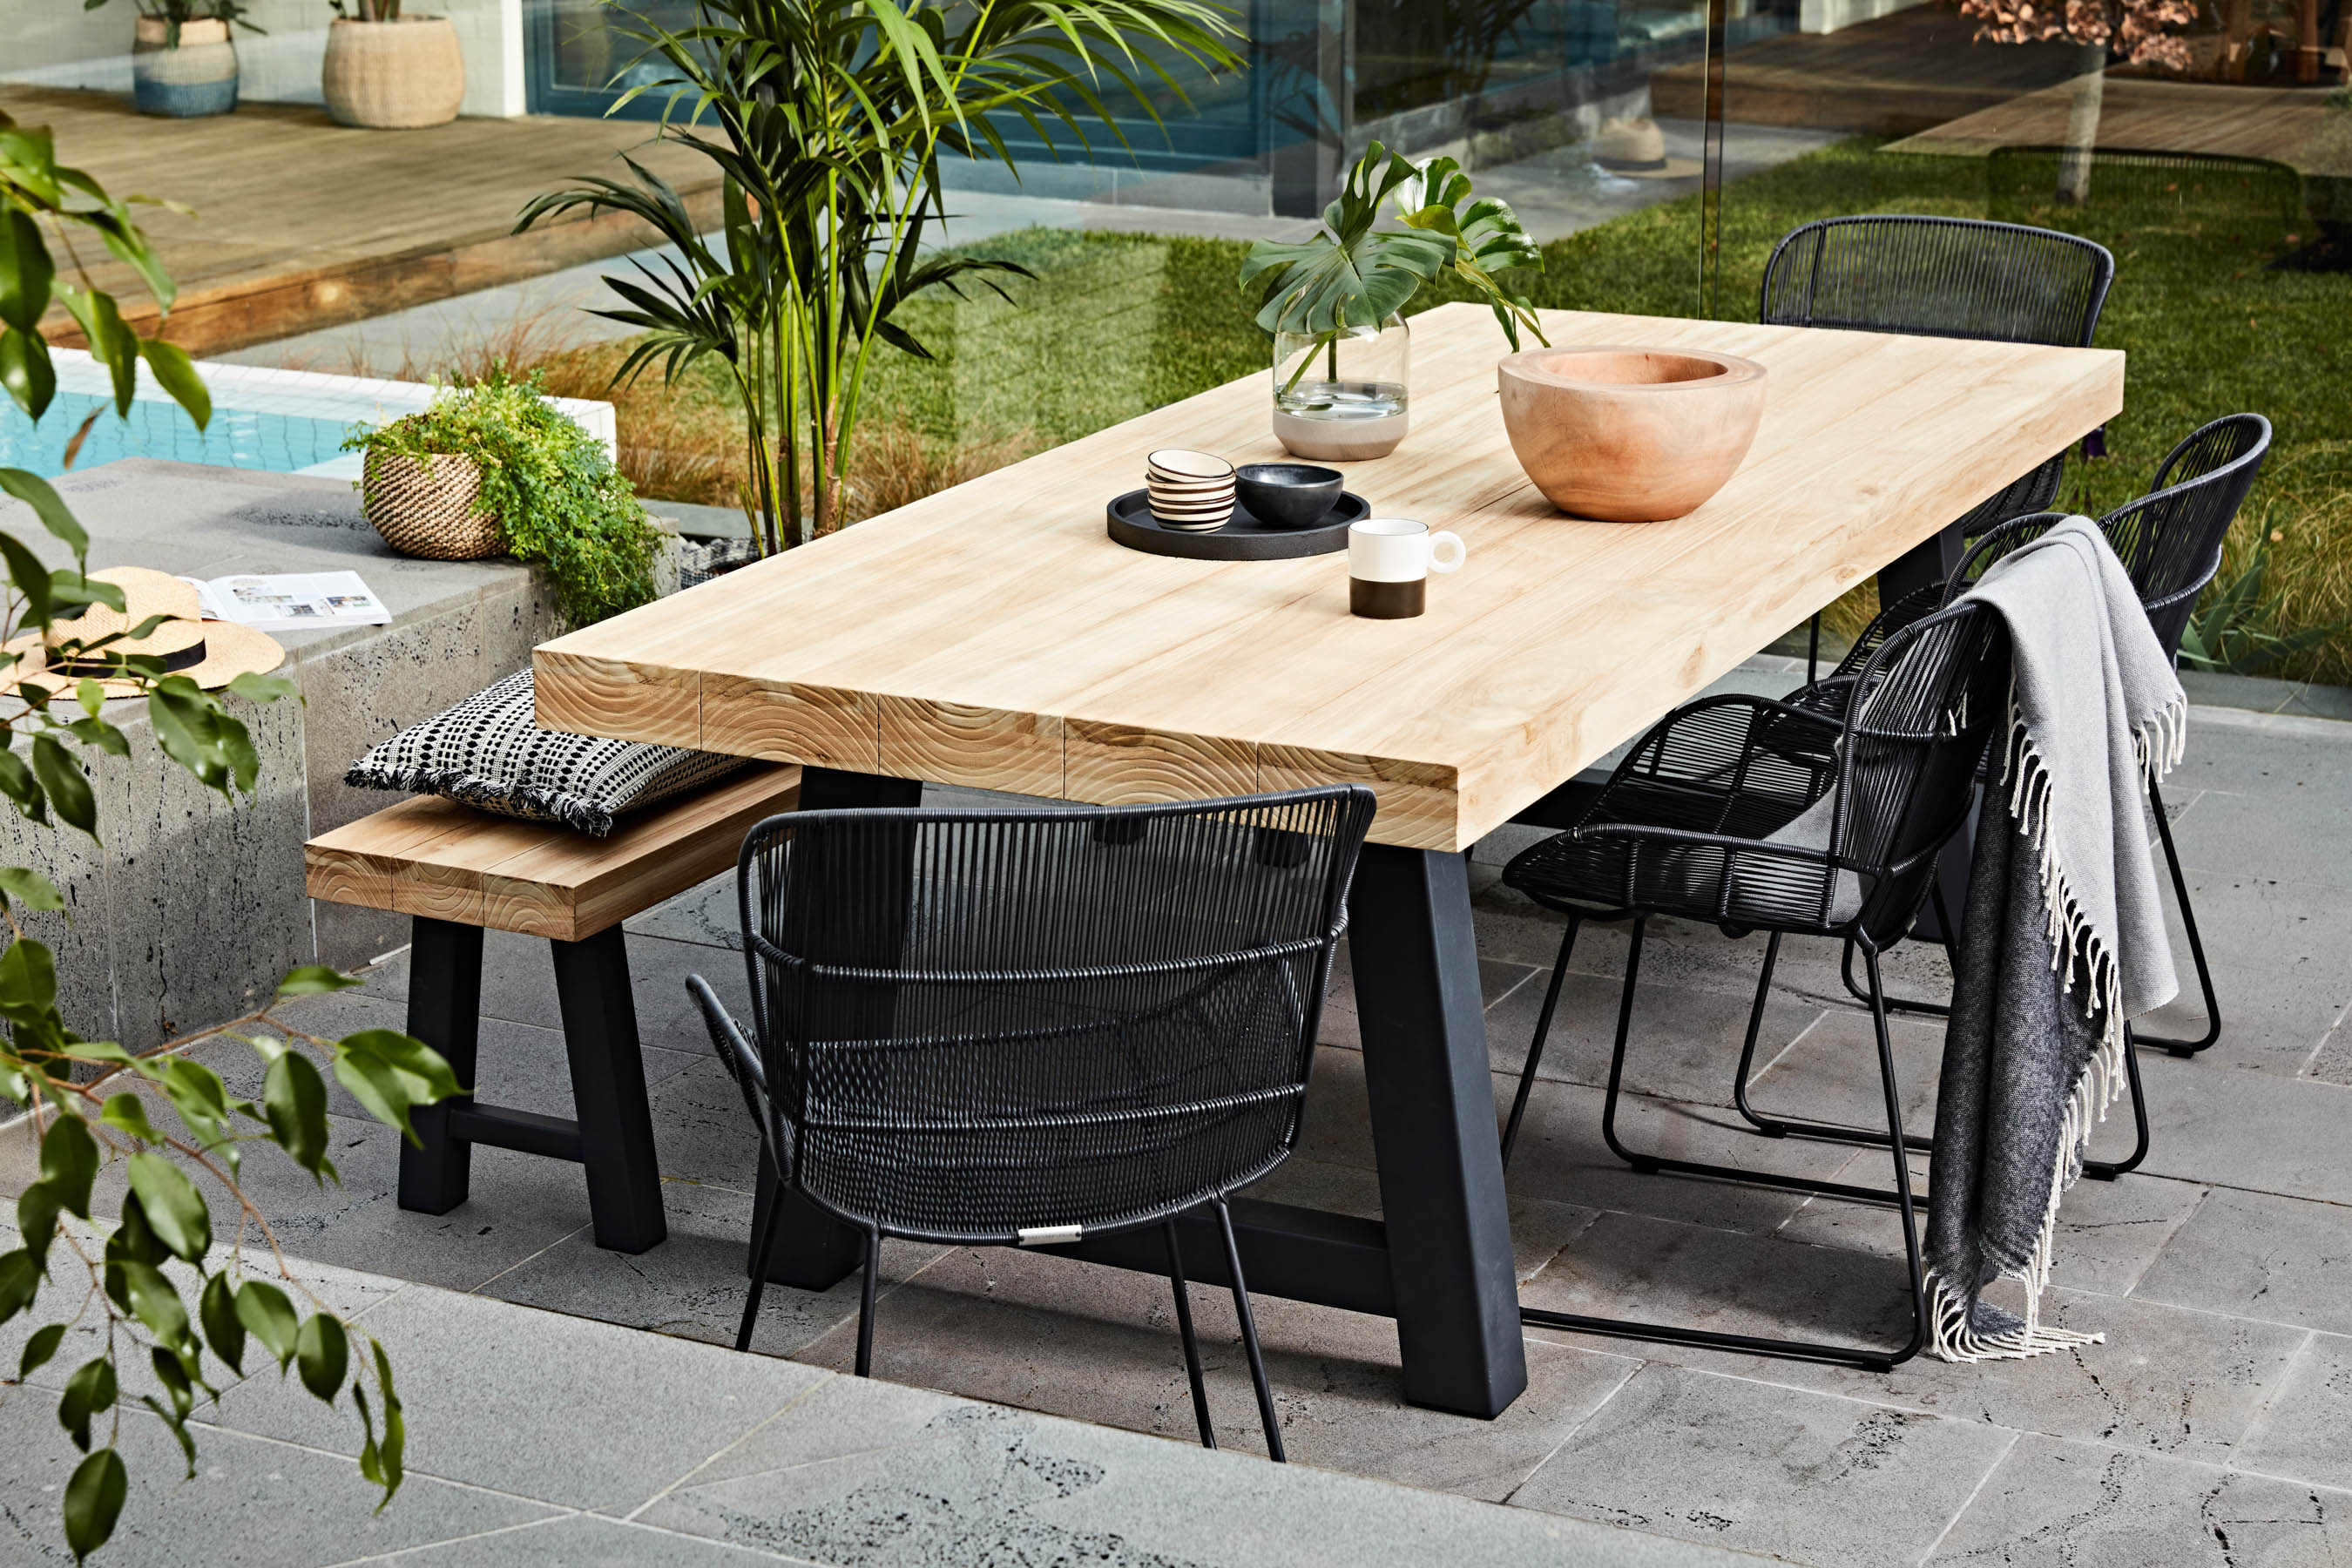 Furniture Gallery Dining-Tables granada-beach-dining-table-03